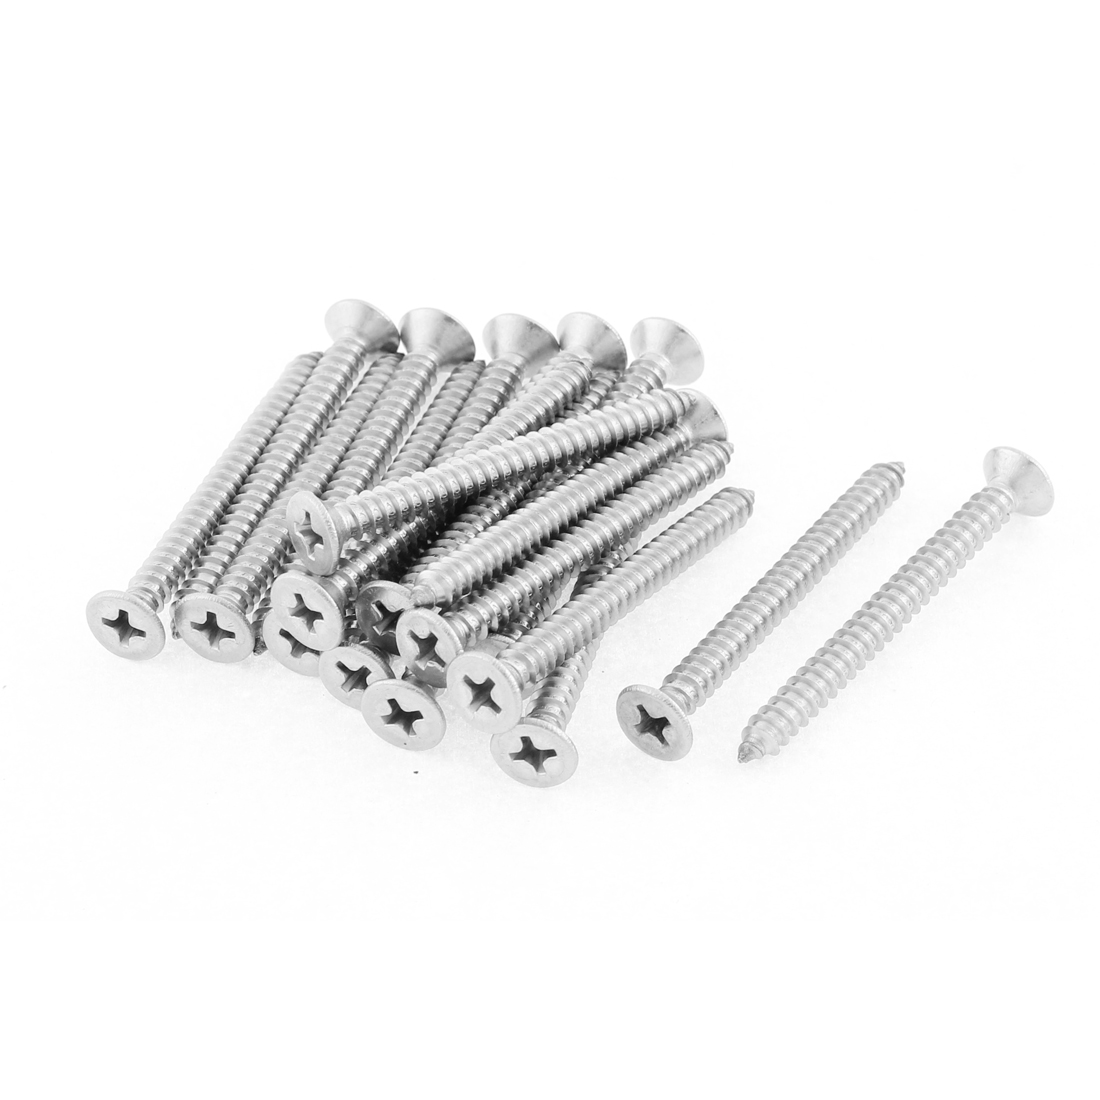 20 Pcs 4.8mmx50mm Stainless Steel Phillips Flat Head Sheet Self Tapping Screws